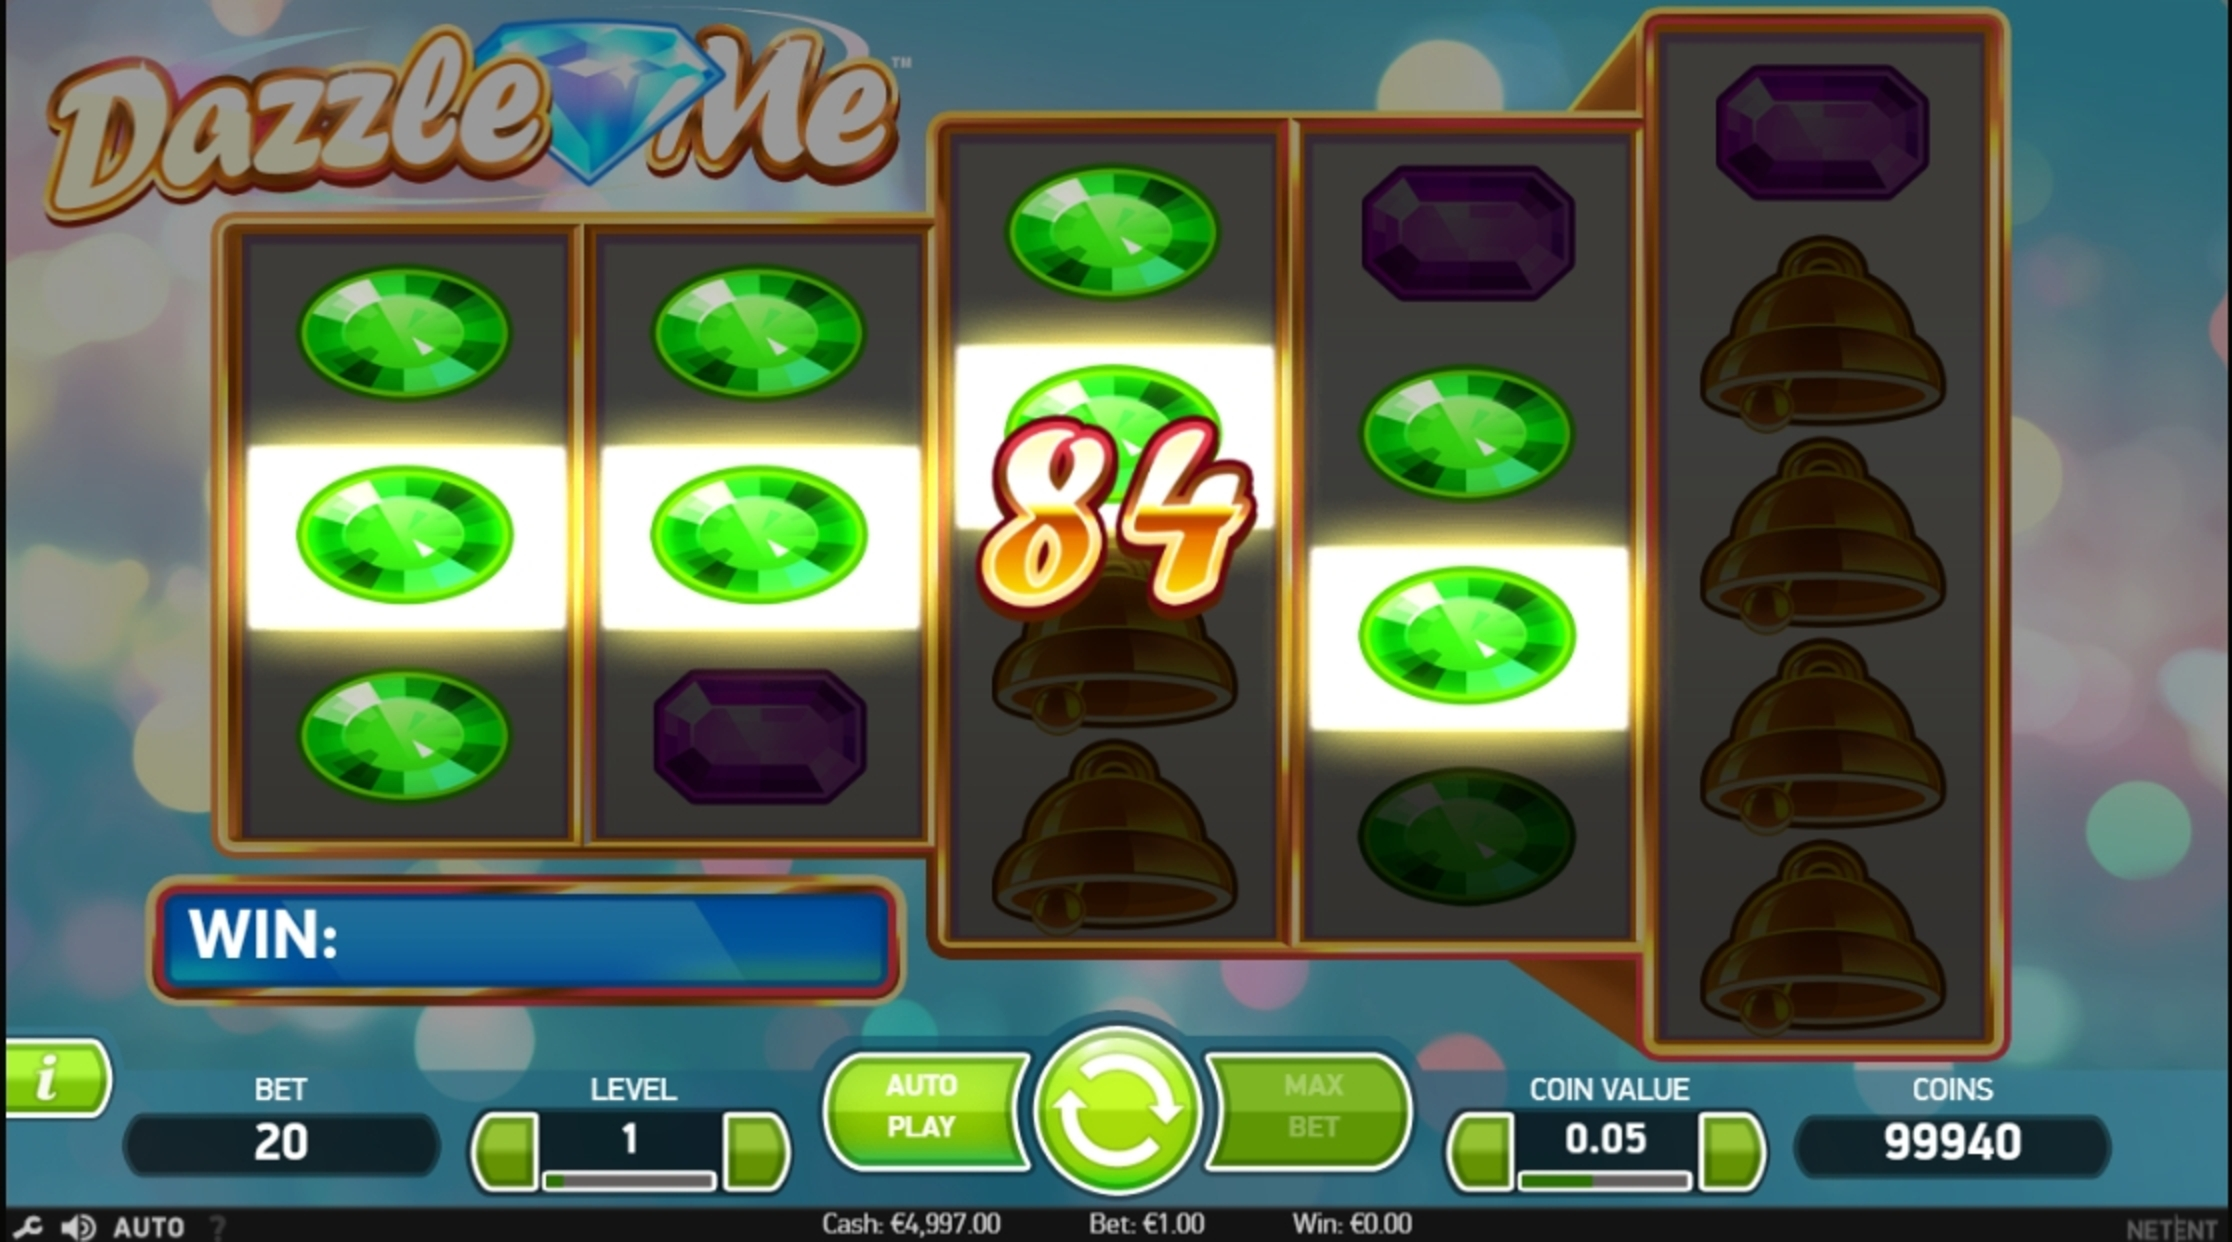 Win Money in Dazzle Me Free Slot Game by NetEnt